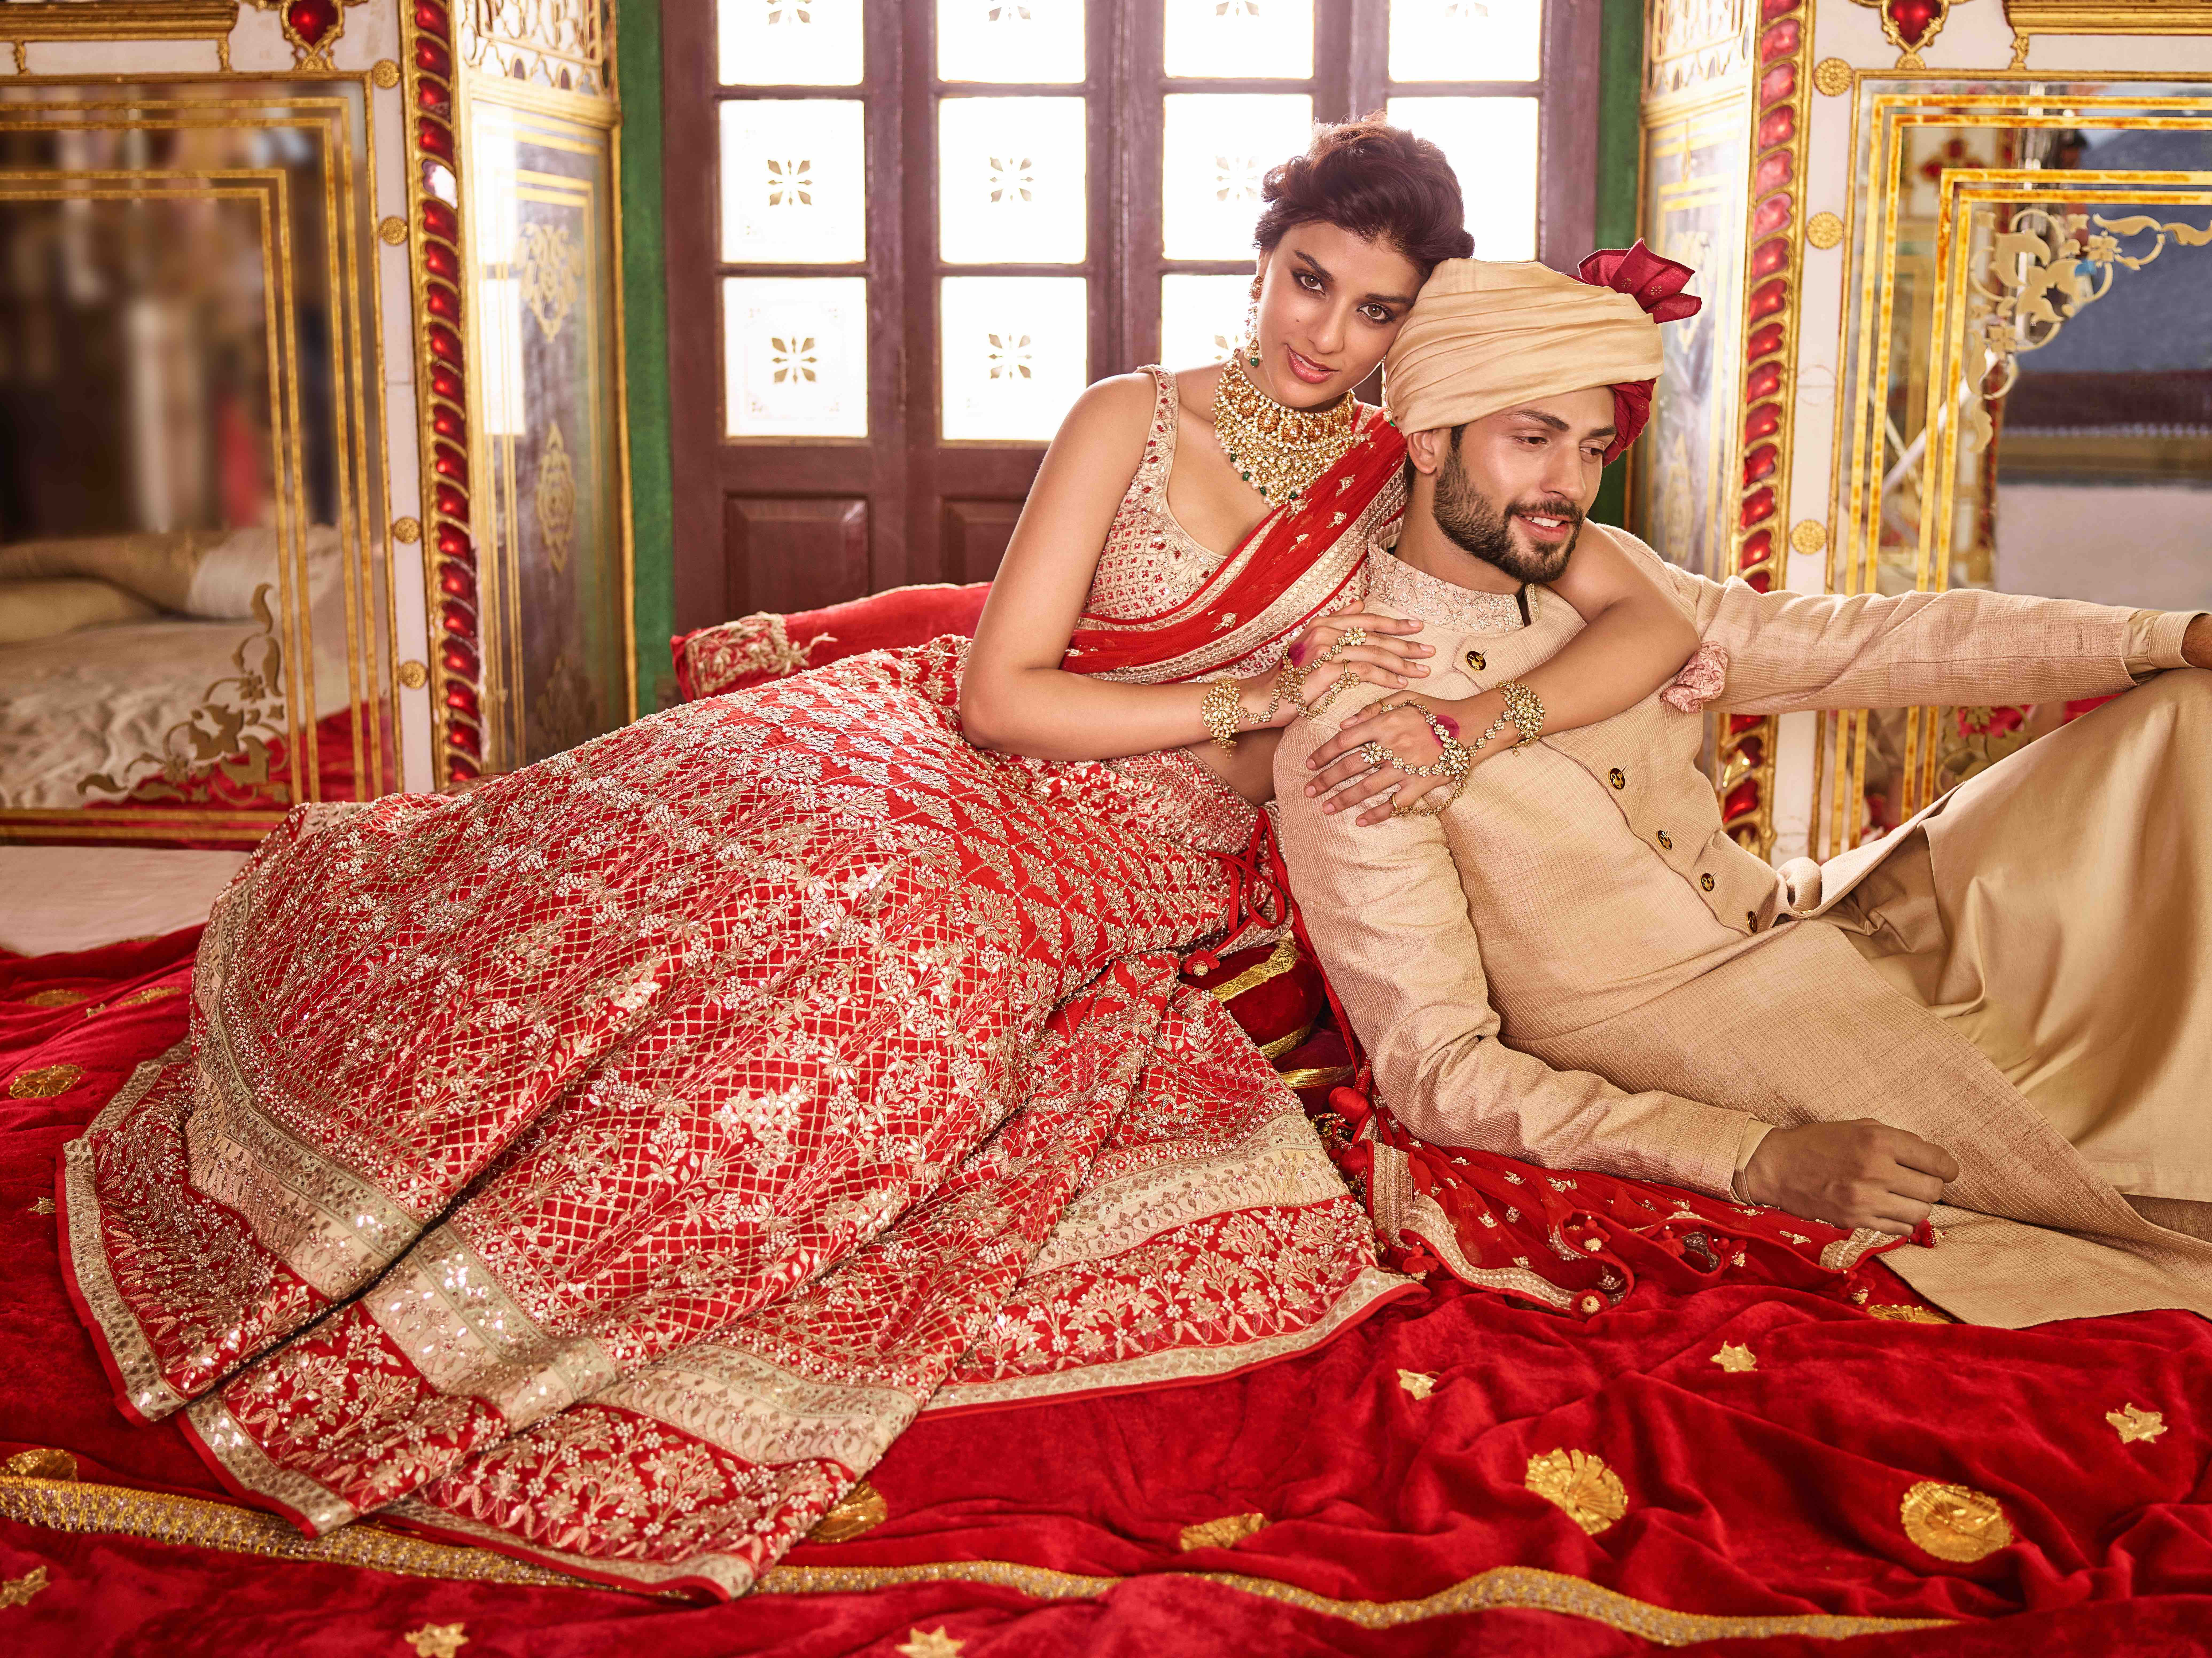 Indian Fashion Trailblazer Anita Dongre Among Participating Designers At Uk S Leading South Asian High Fashion Bridal And Beauty Showcase Aashni Co Wedding Show 2019 Desixpress Events Fashion Law The Asian Today Online